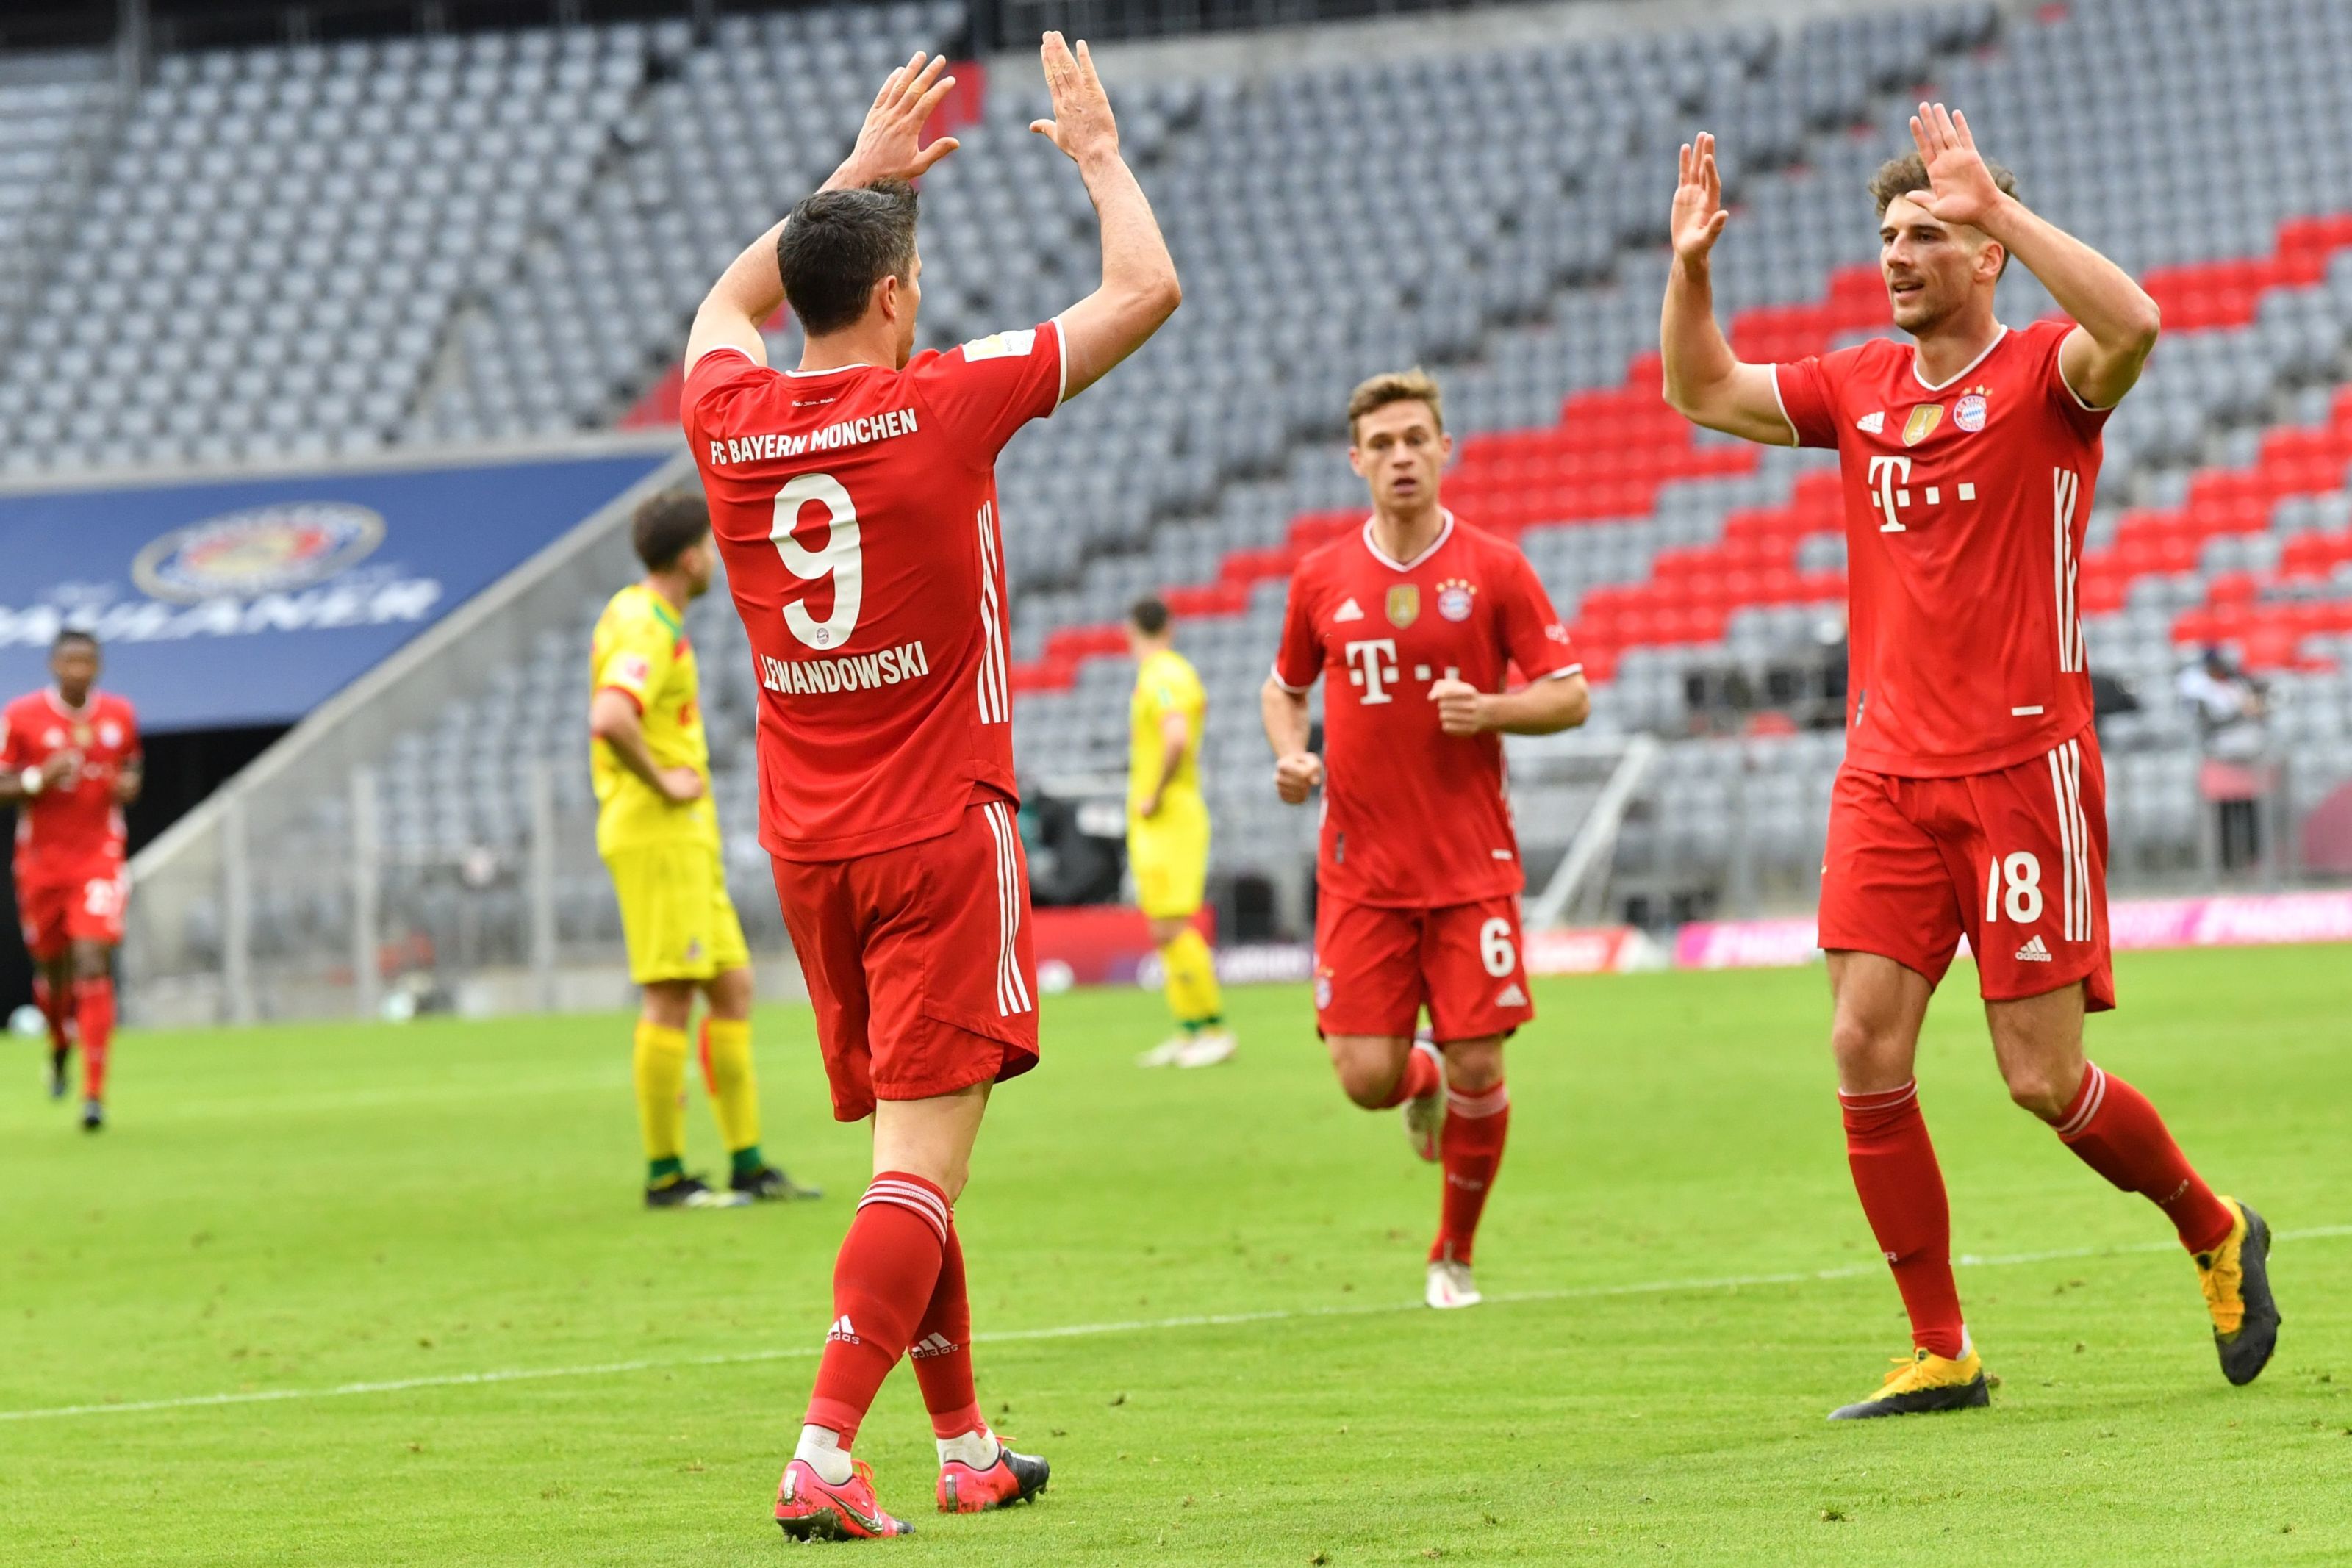 Bayern Munich: Top three performers from 5-1 victory over FC Koln